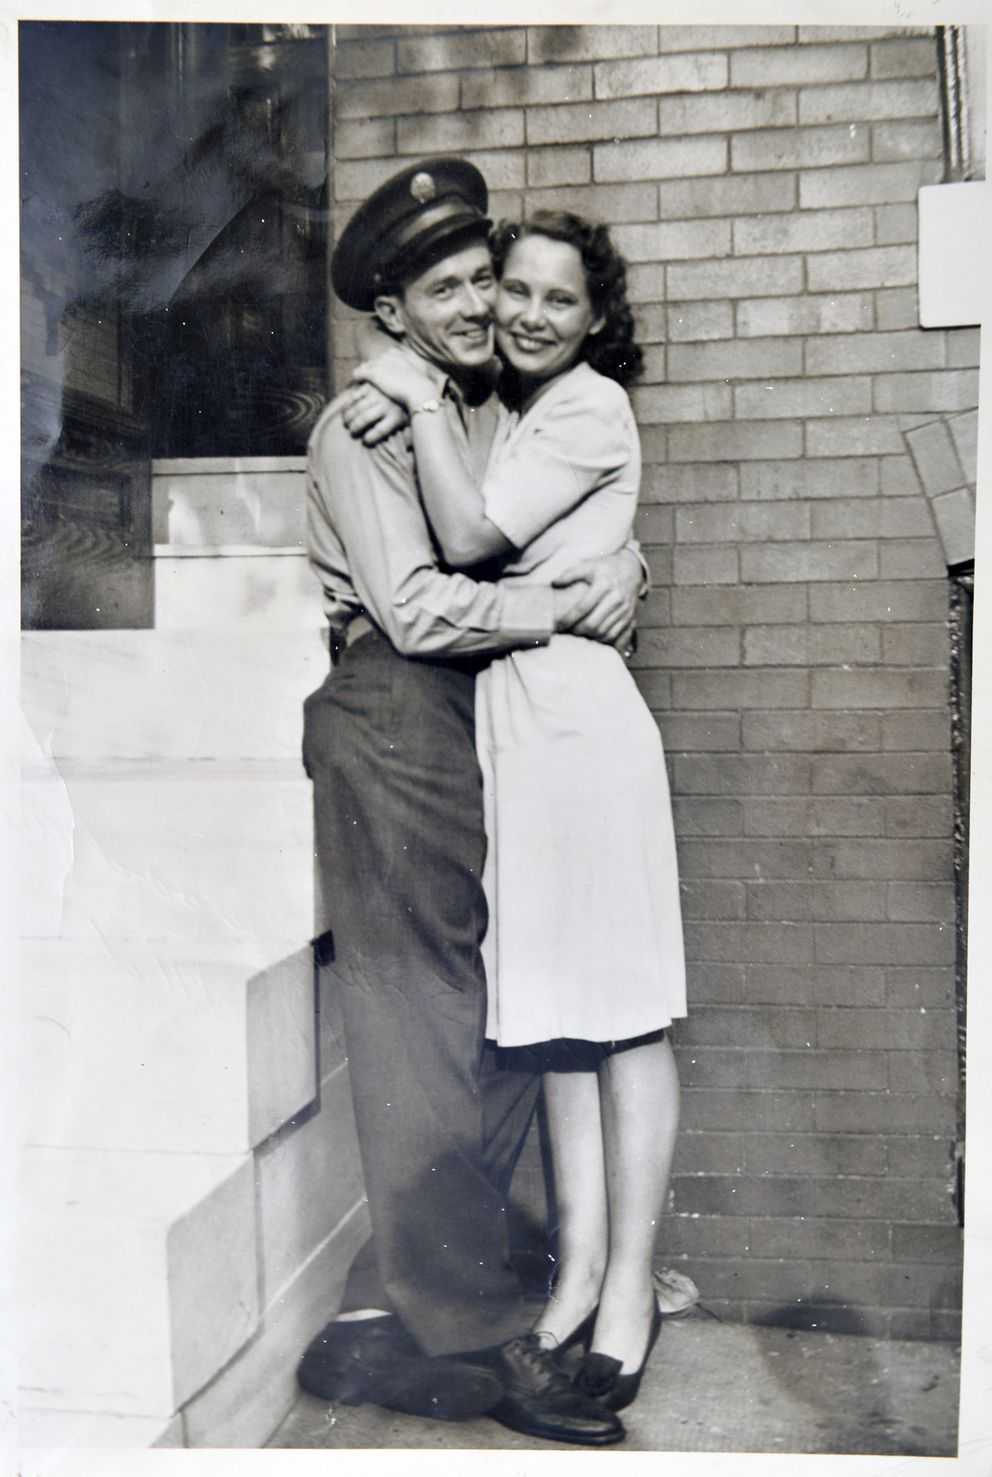 Gladys and Bob Ament in 1946 after he returned from the war. (Photo for The Washington Post by Doug Kapustin)